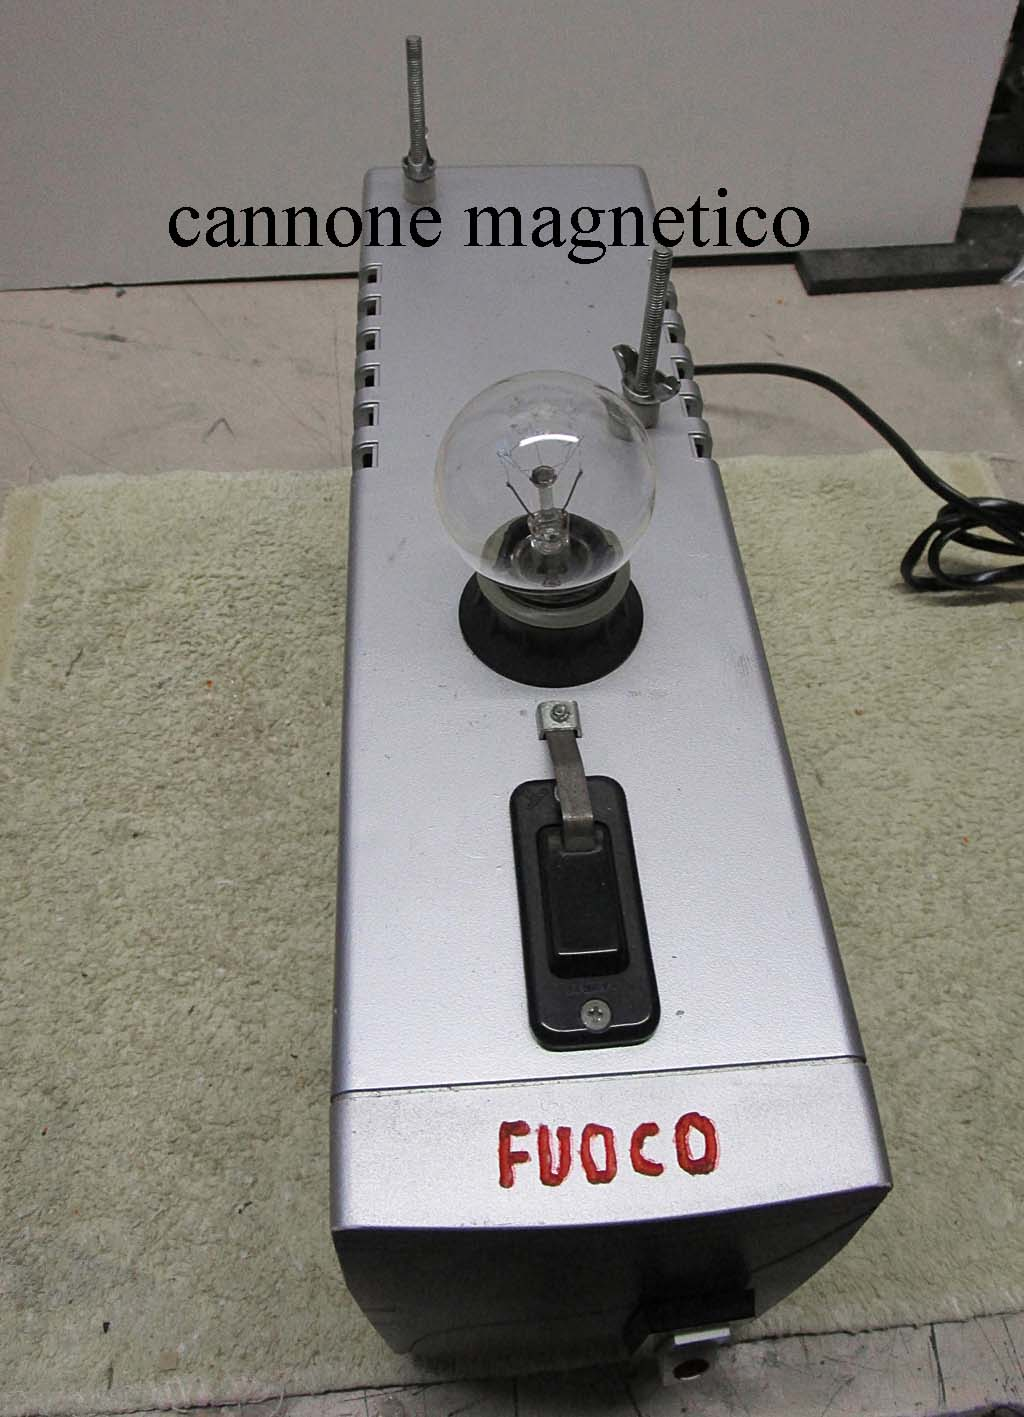 cannone magnetico